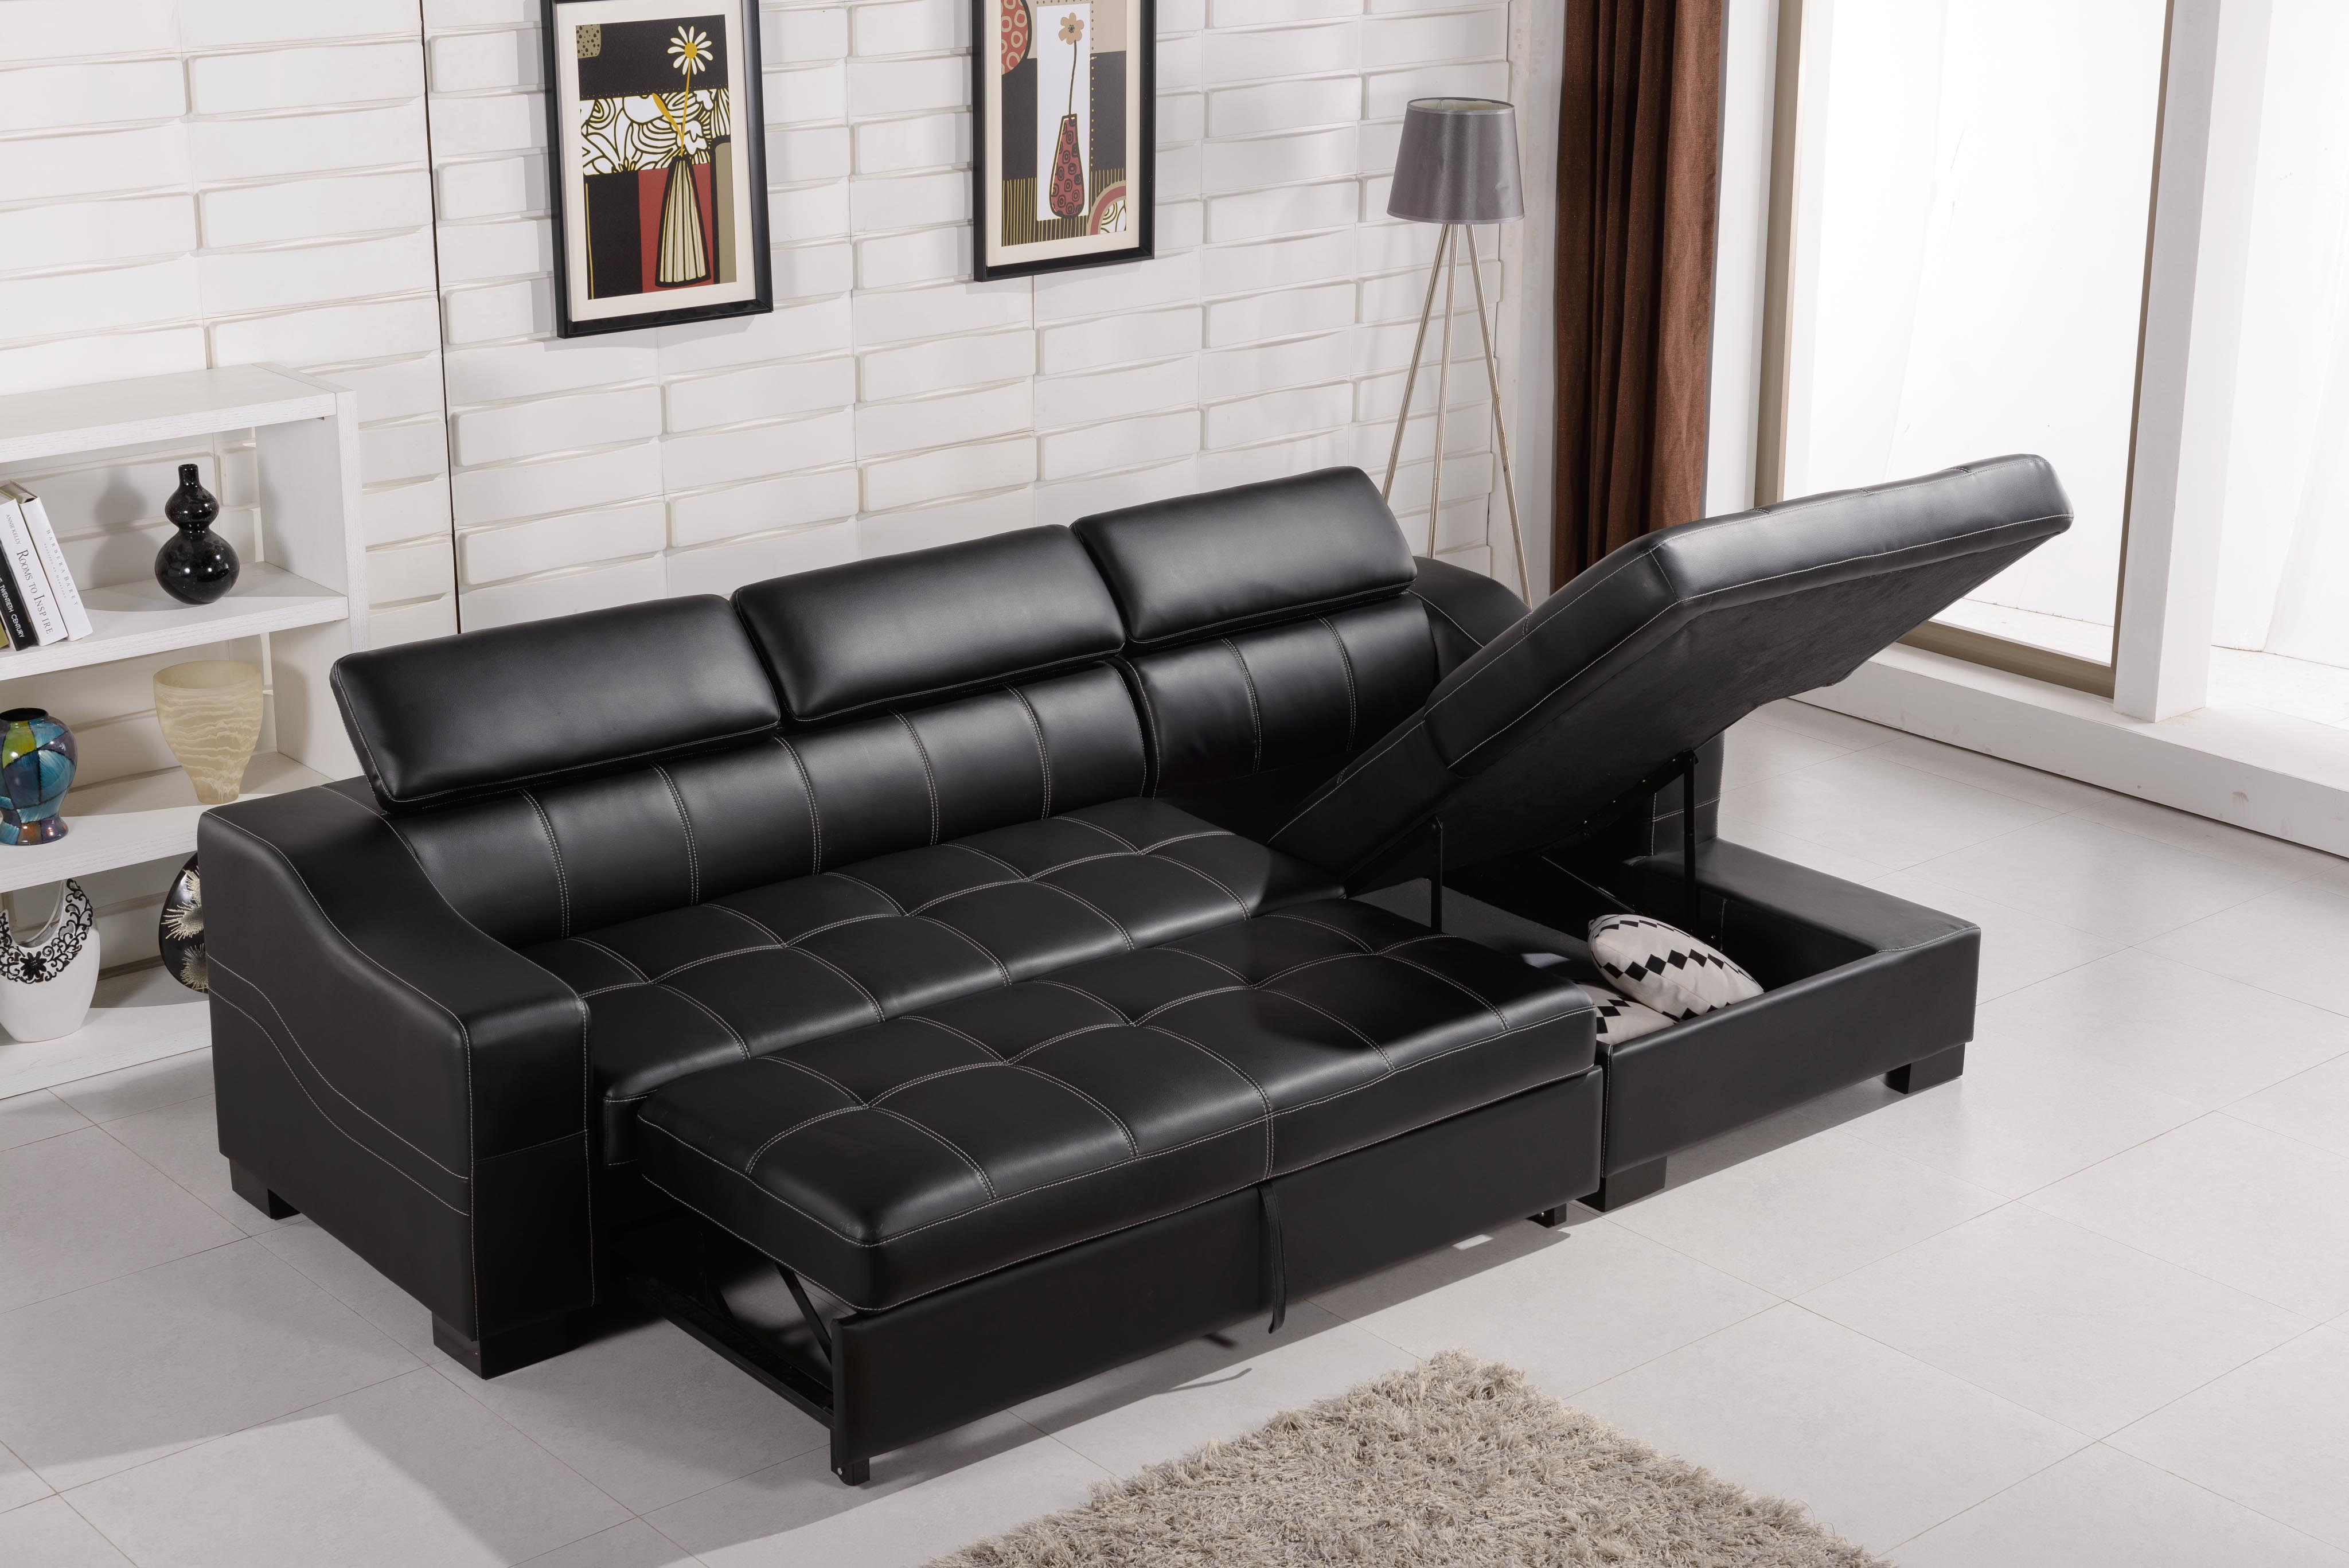 Compact Furniture Small Living Living In Sofa Beds With Storage Compact Furniture Pieces For Todays Small Living Space